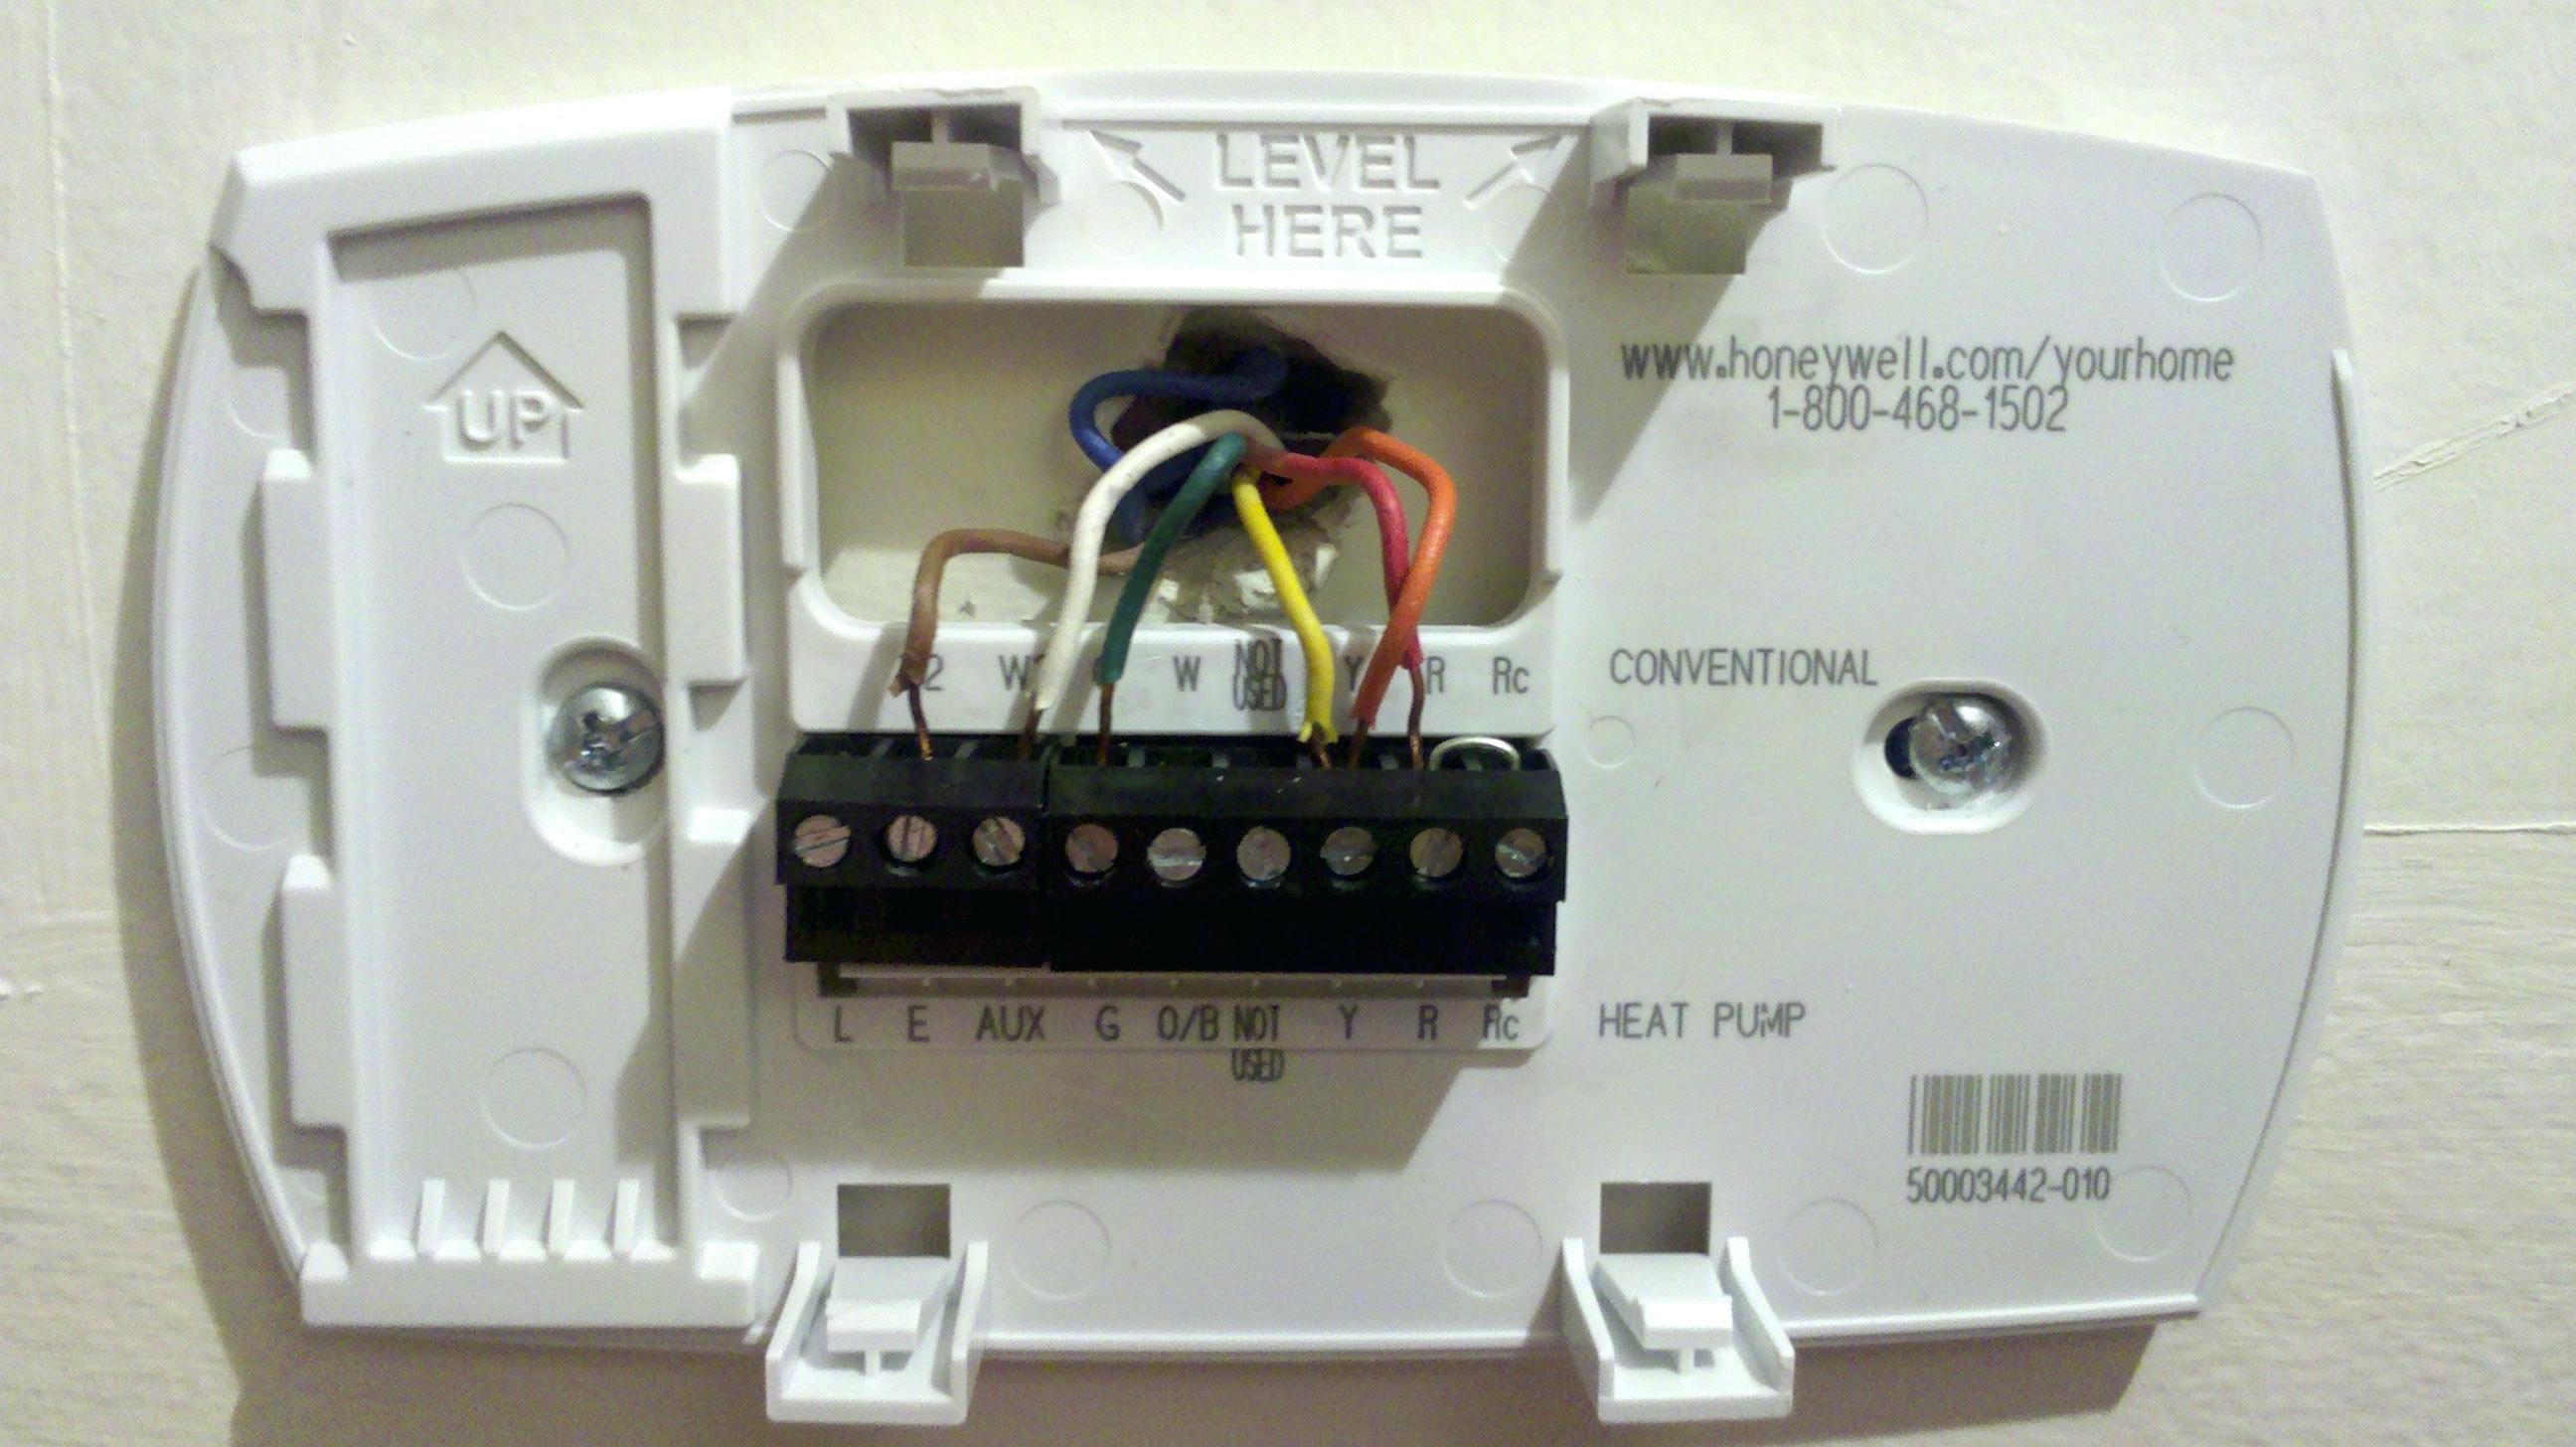 honeywell thermostat th3110d1008 wiring diagram Download-Wiring Diagram Detail Name honeywell thermostat th3110d1008 wiring 19-f